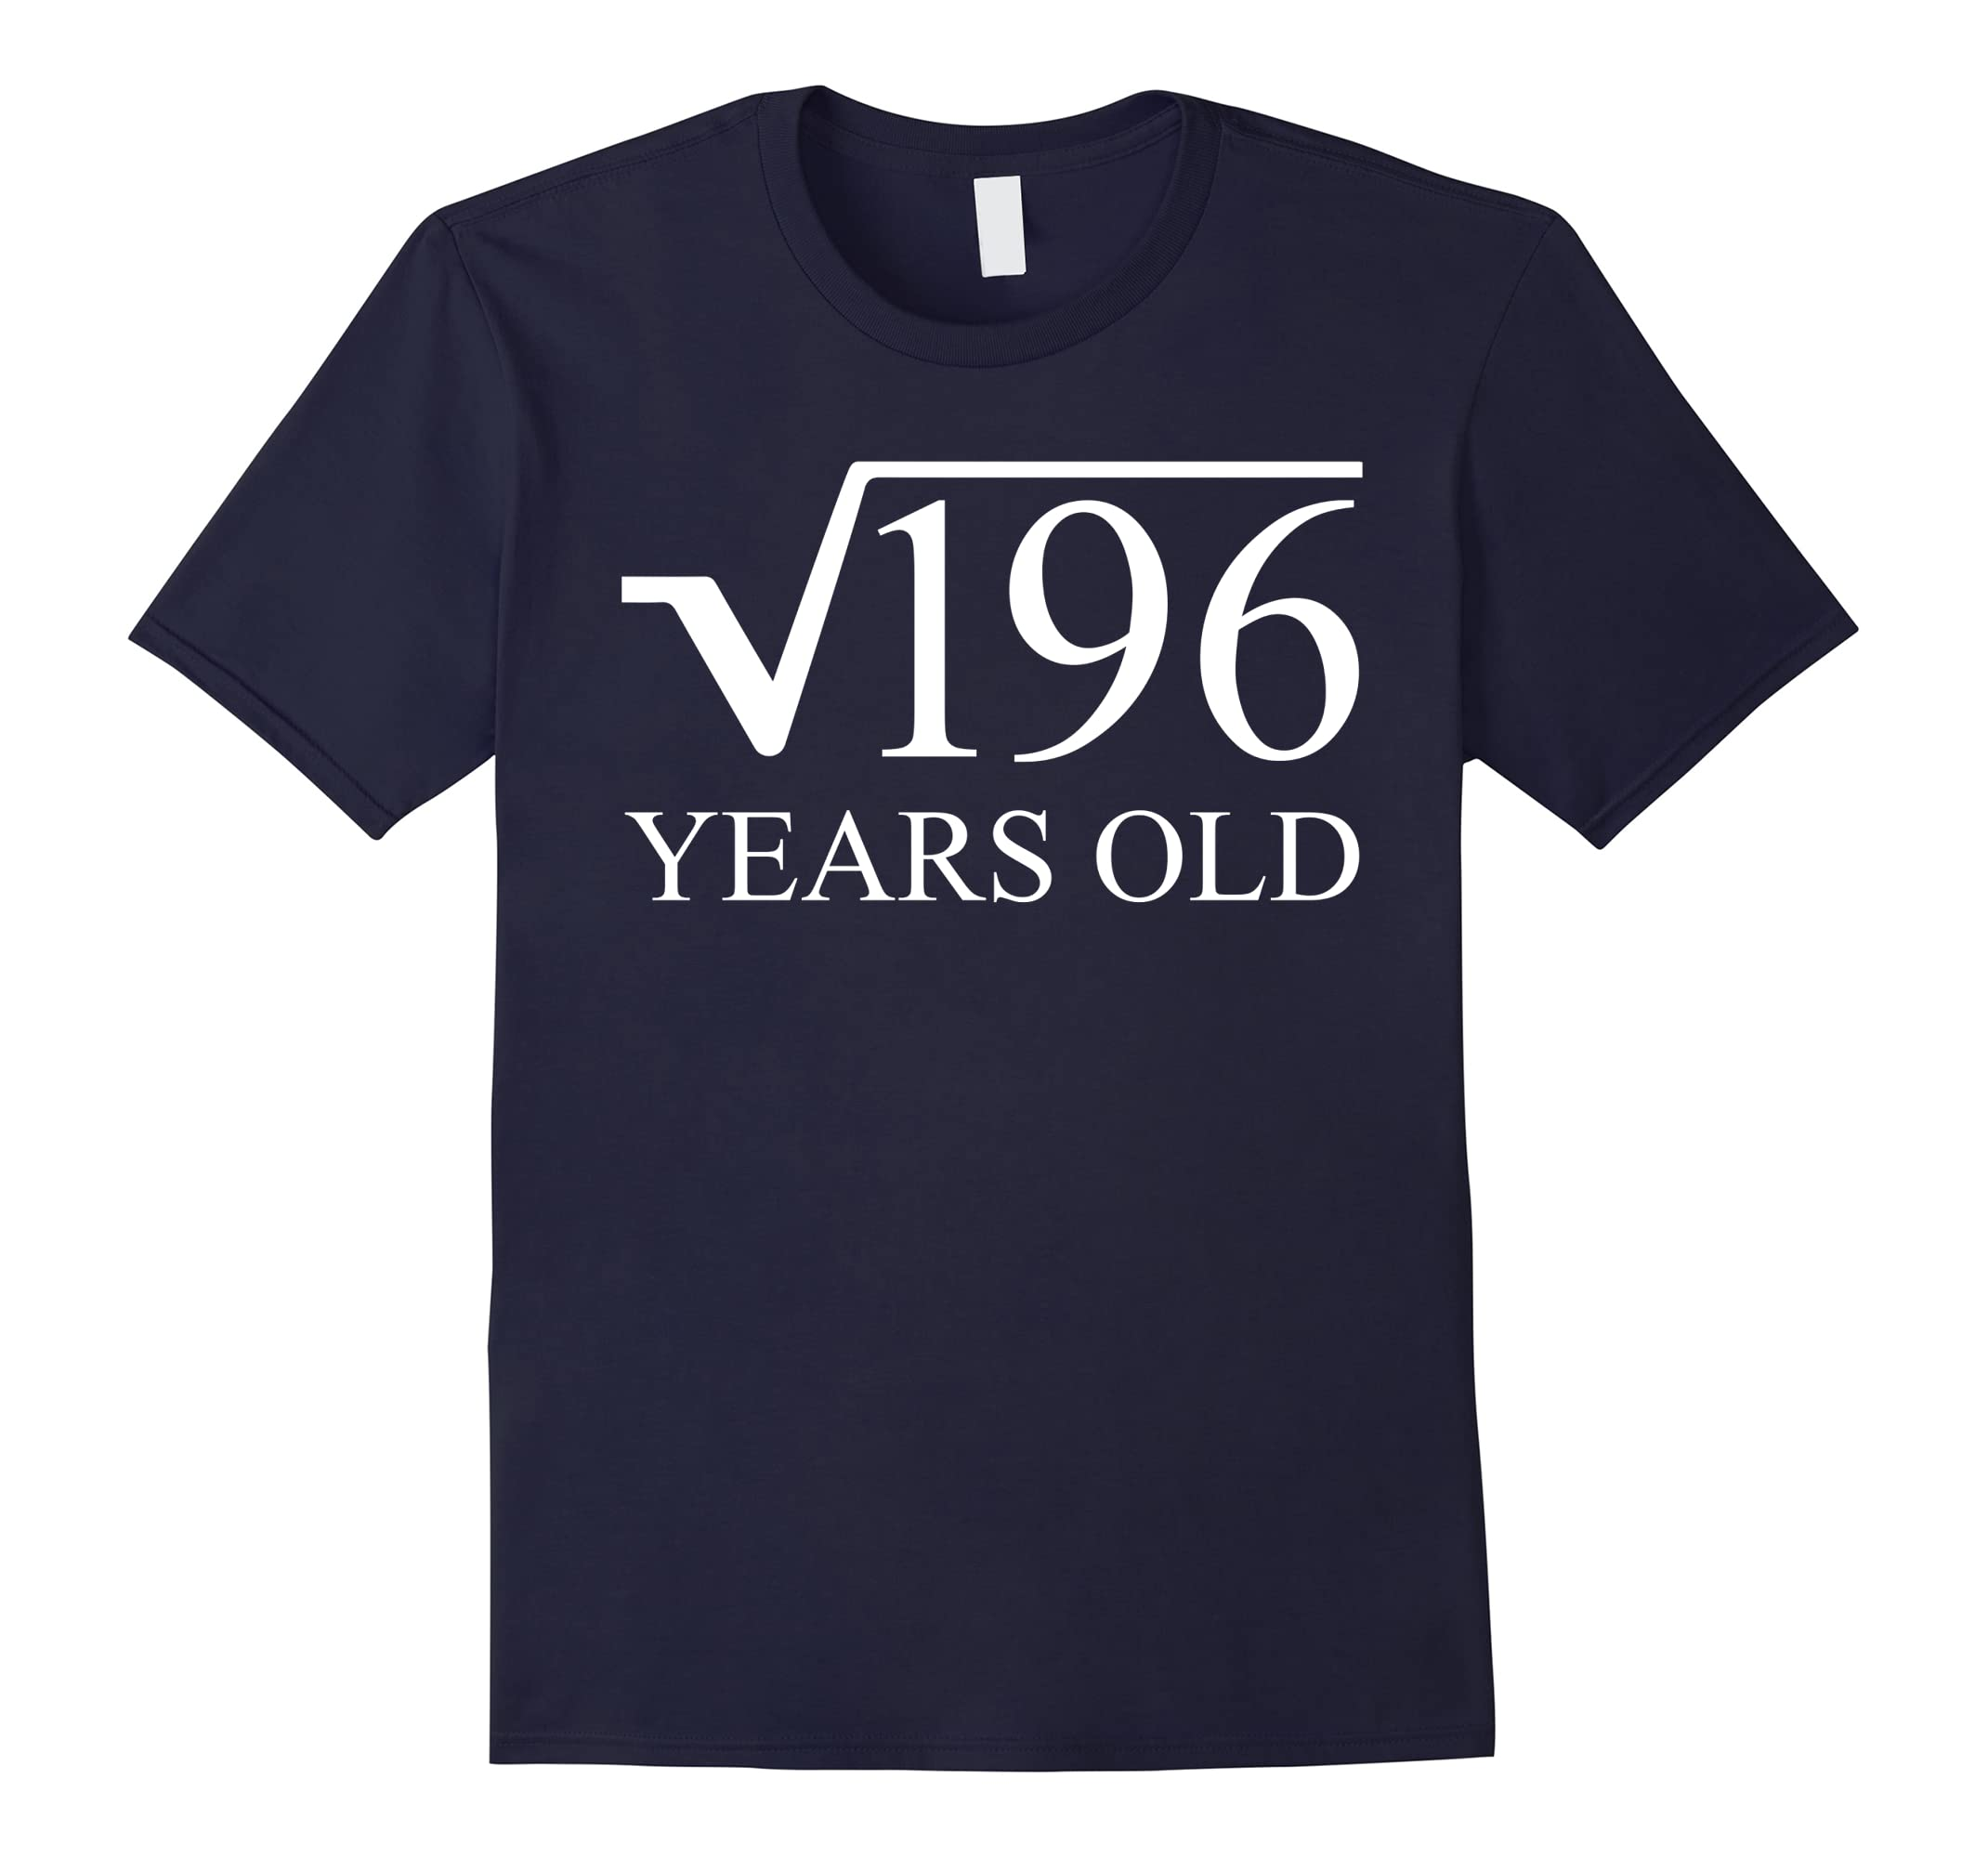 14rd Birthday Tee Shirt 14 Years Old Square Root of 196-ah my shirt one gift